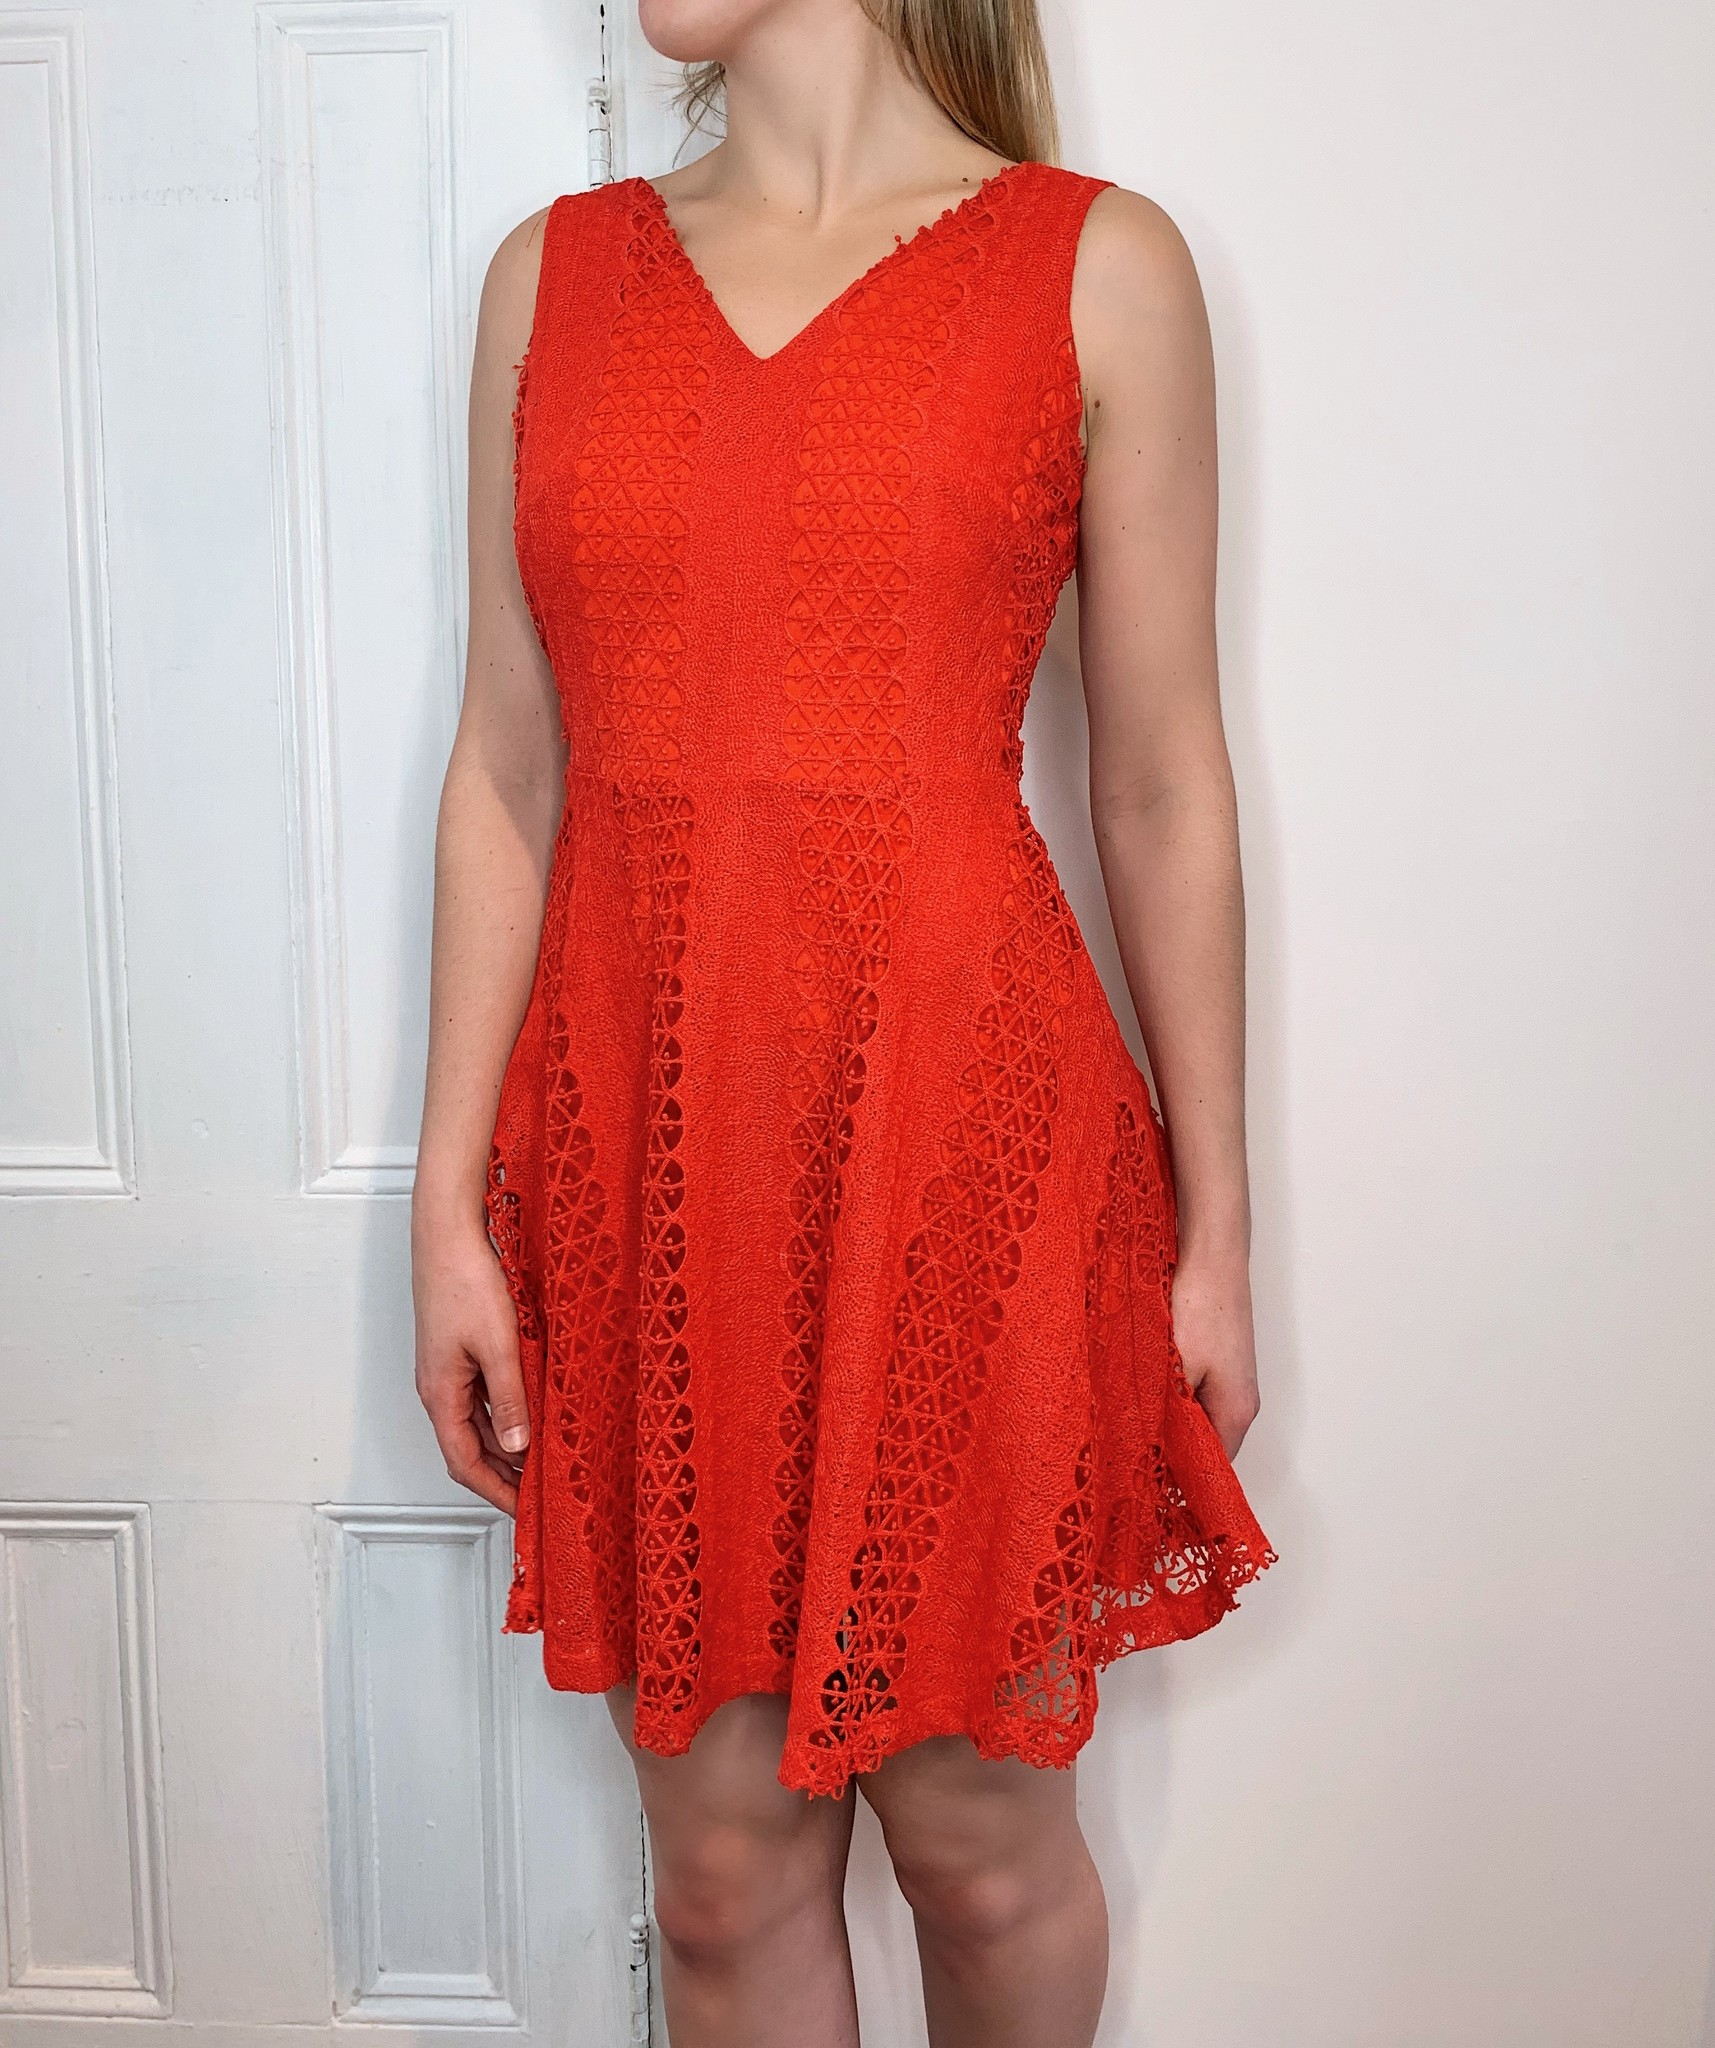 66664f9b Bright Red Lace Dress - Sweet Pea Boutique